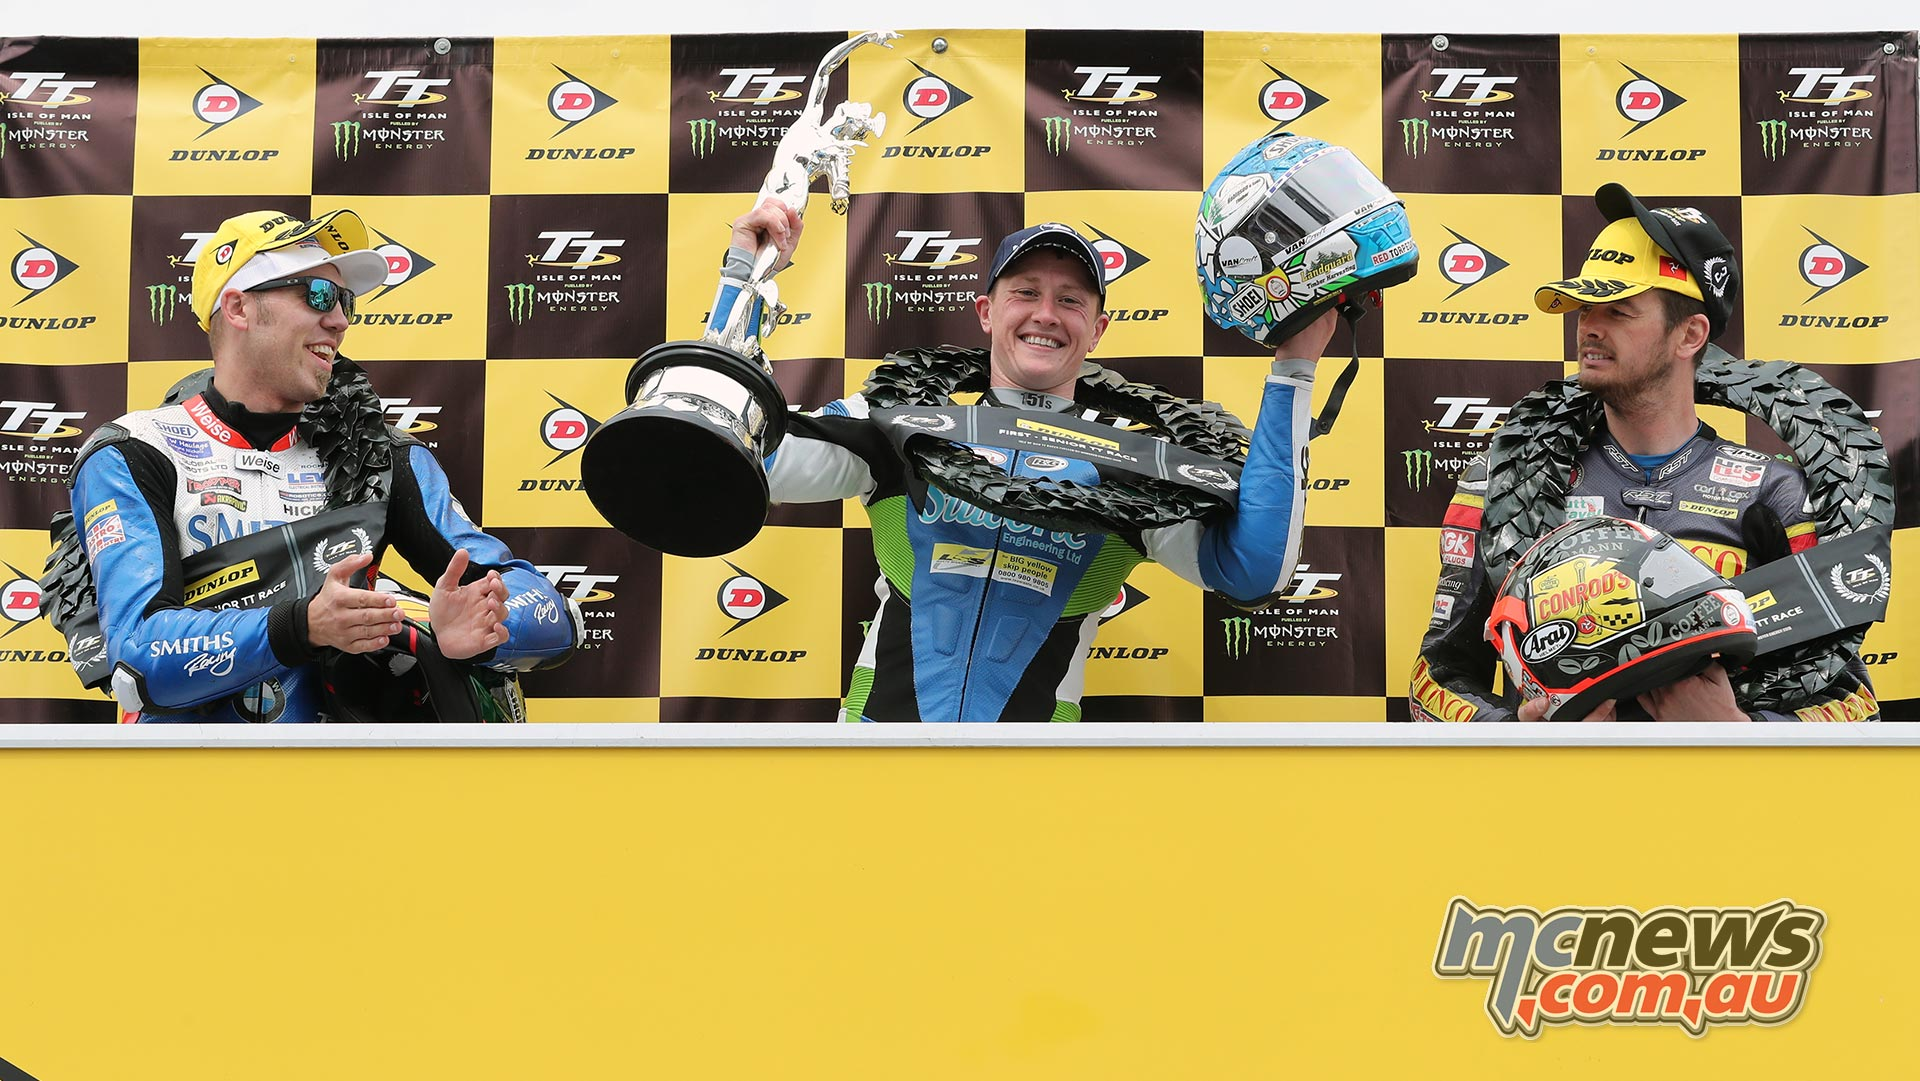 IOMTT Senior Dean Harrison Podium Peter Hickman Conor Cummins